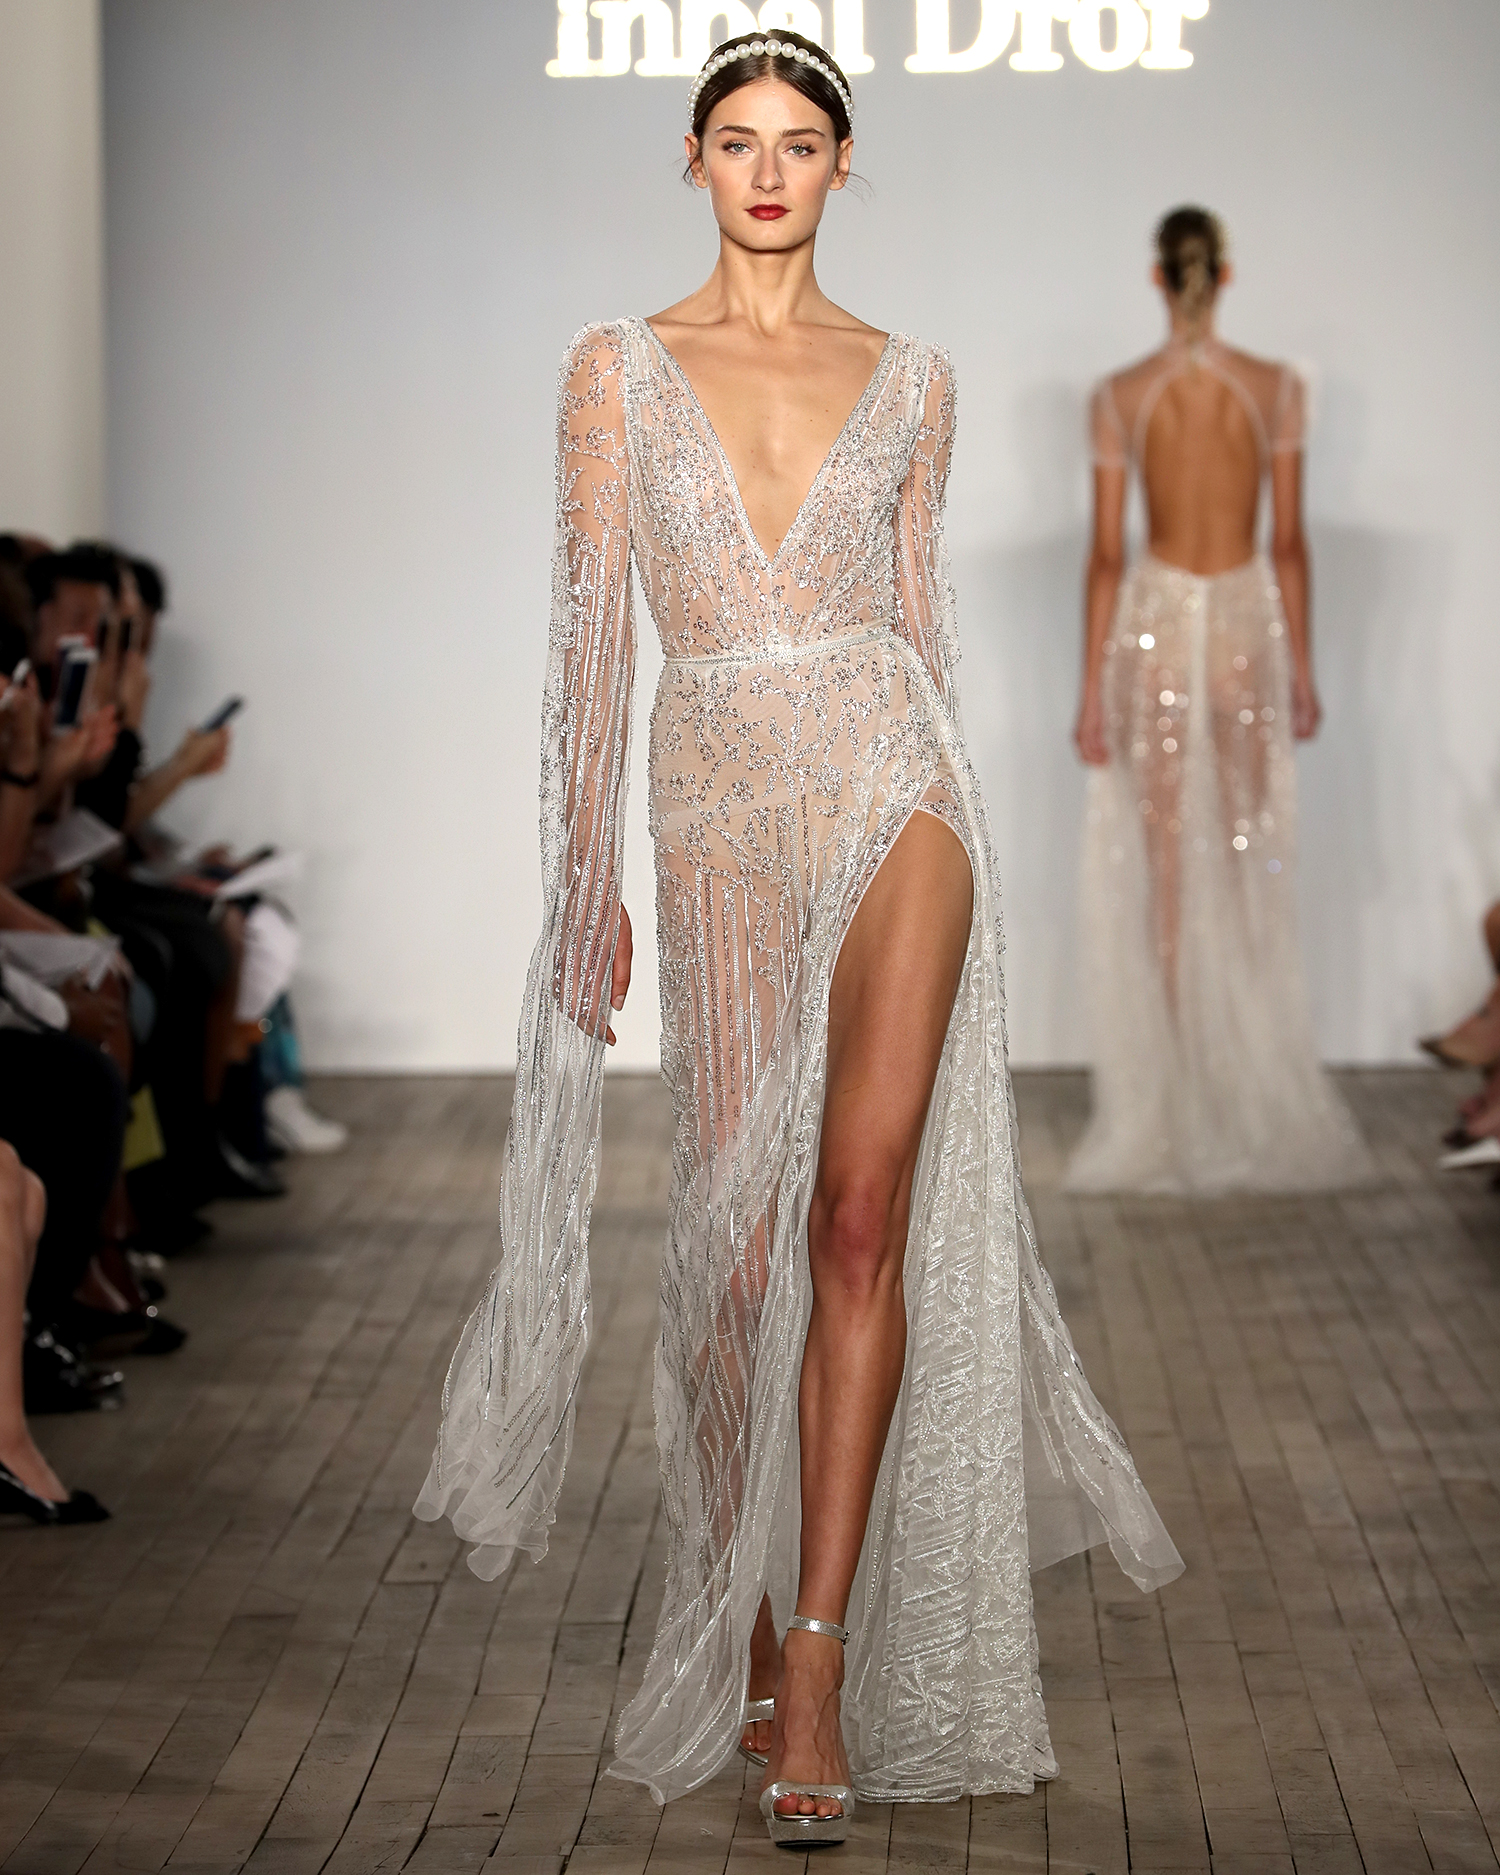 inbal dror wedding dress sheer beaded sheath with high slit